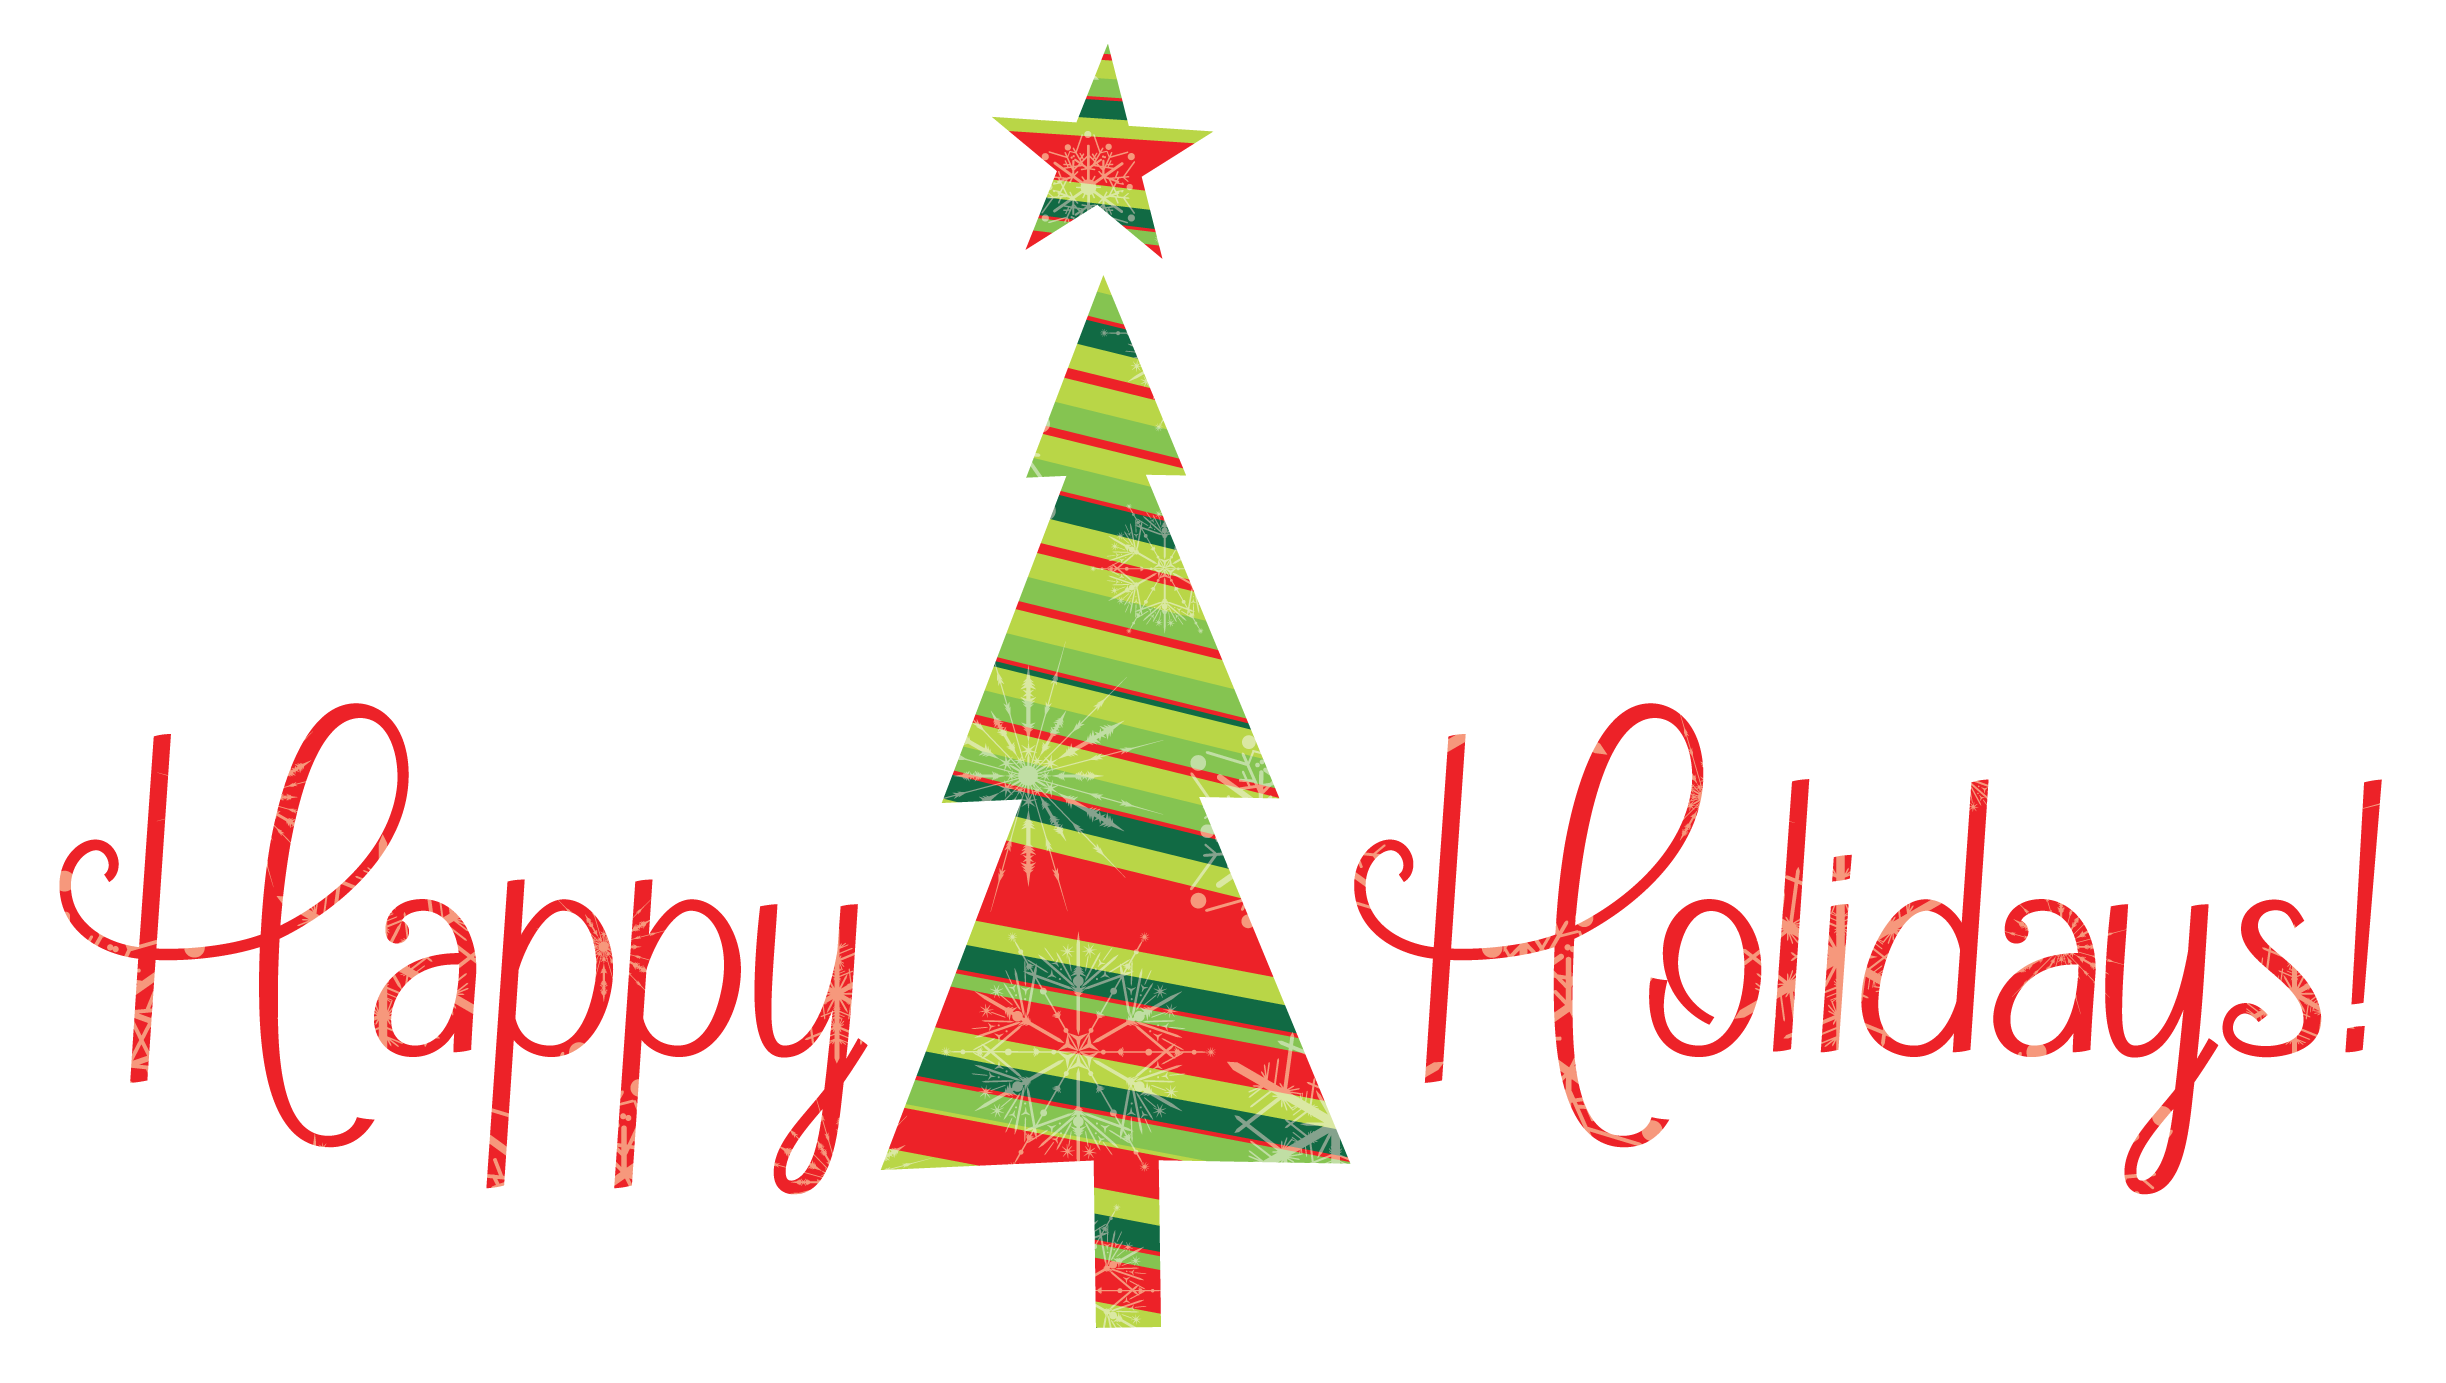 Happy-holidays-happy-holiday-pictures-images-mentsdb-page-clip-art